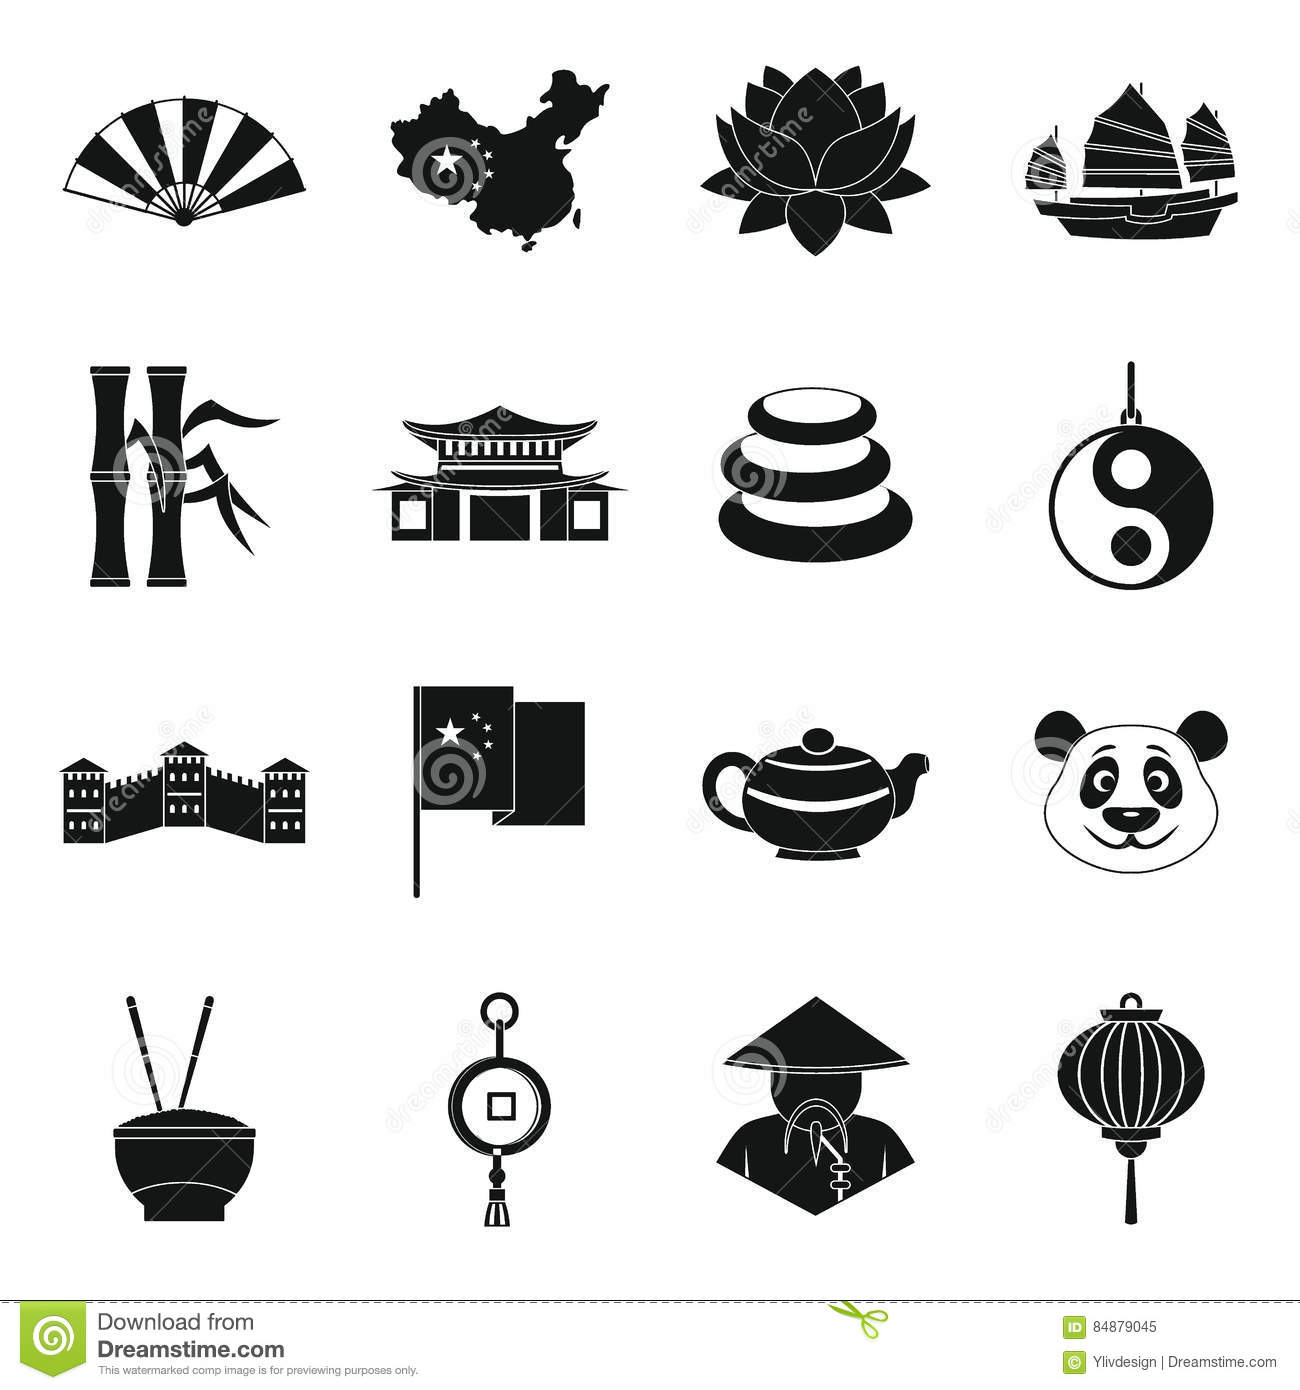 China travel symbols icons set, simple style